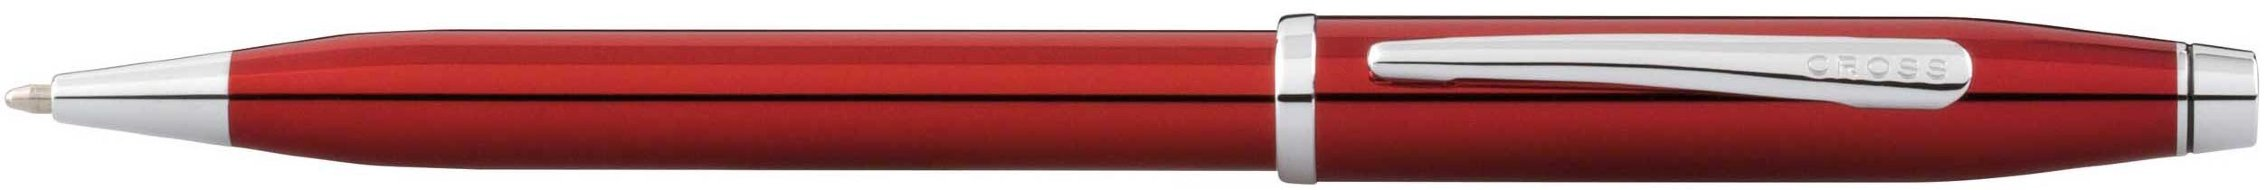 Шариковая ручка Cross Century II Translucent Red Lacquer